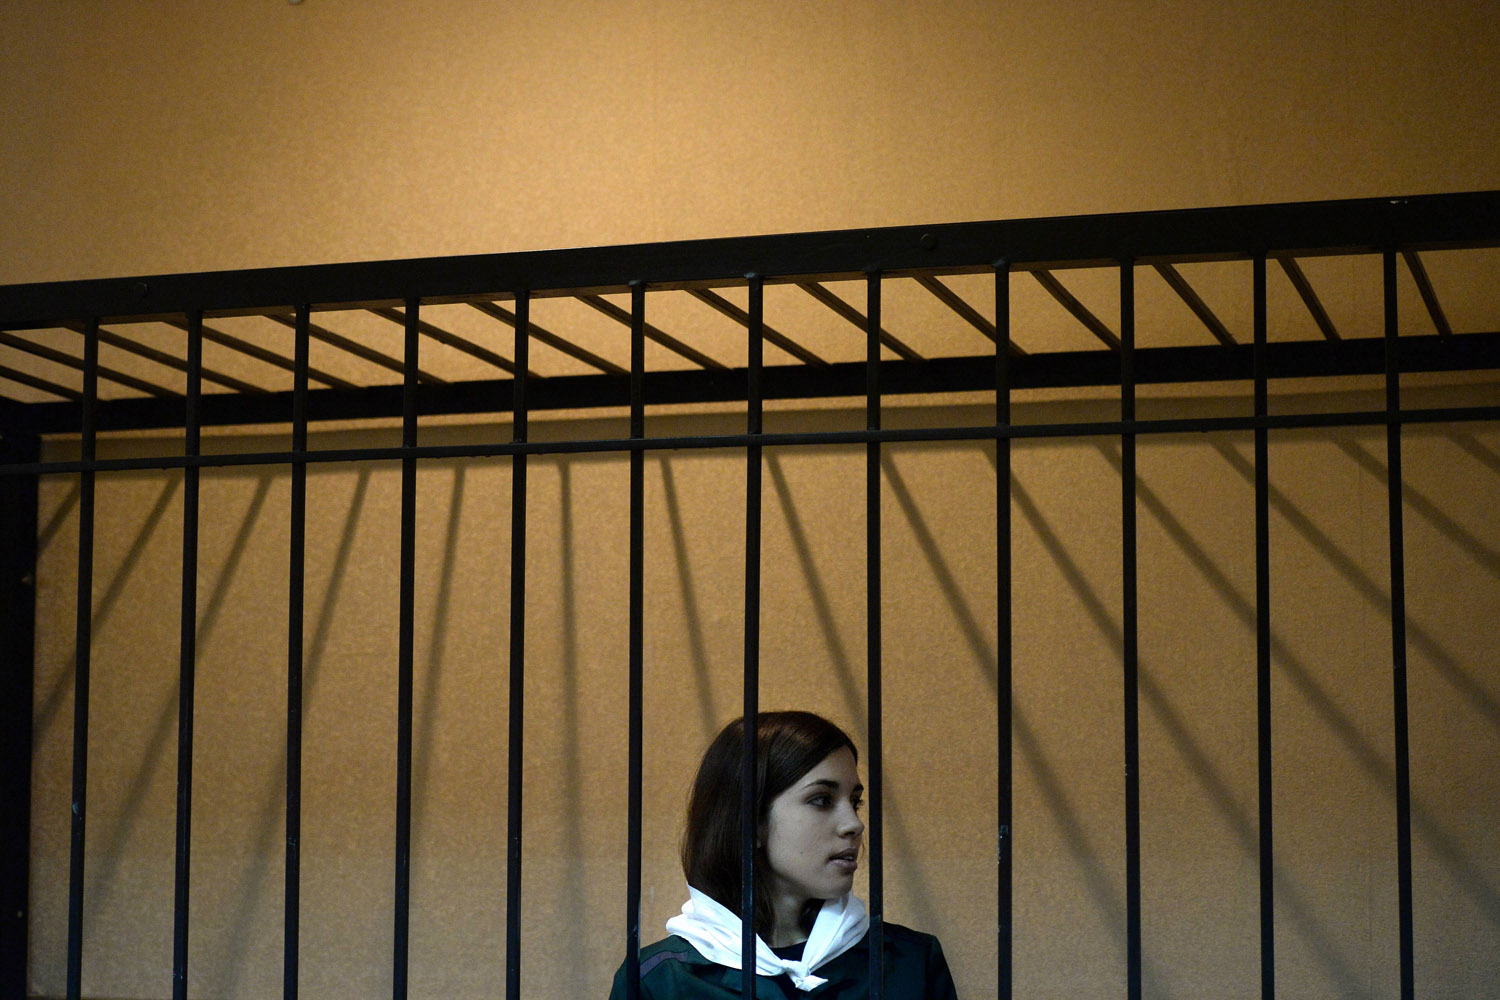 April 26, 2013. Pussy Riot member Nadezhda Tolokonnikova looks on from behind bars as a petition for her early release is heard.